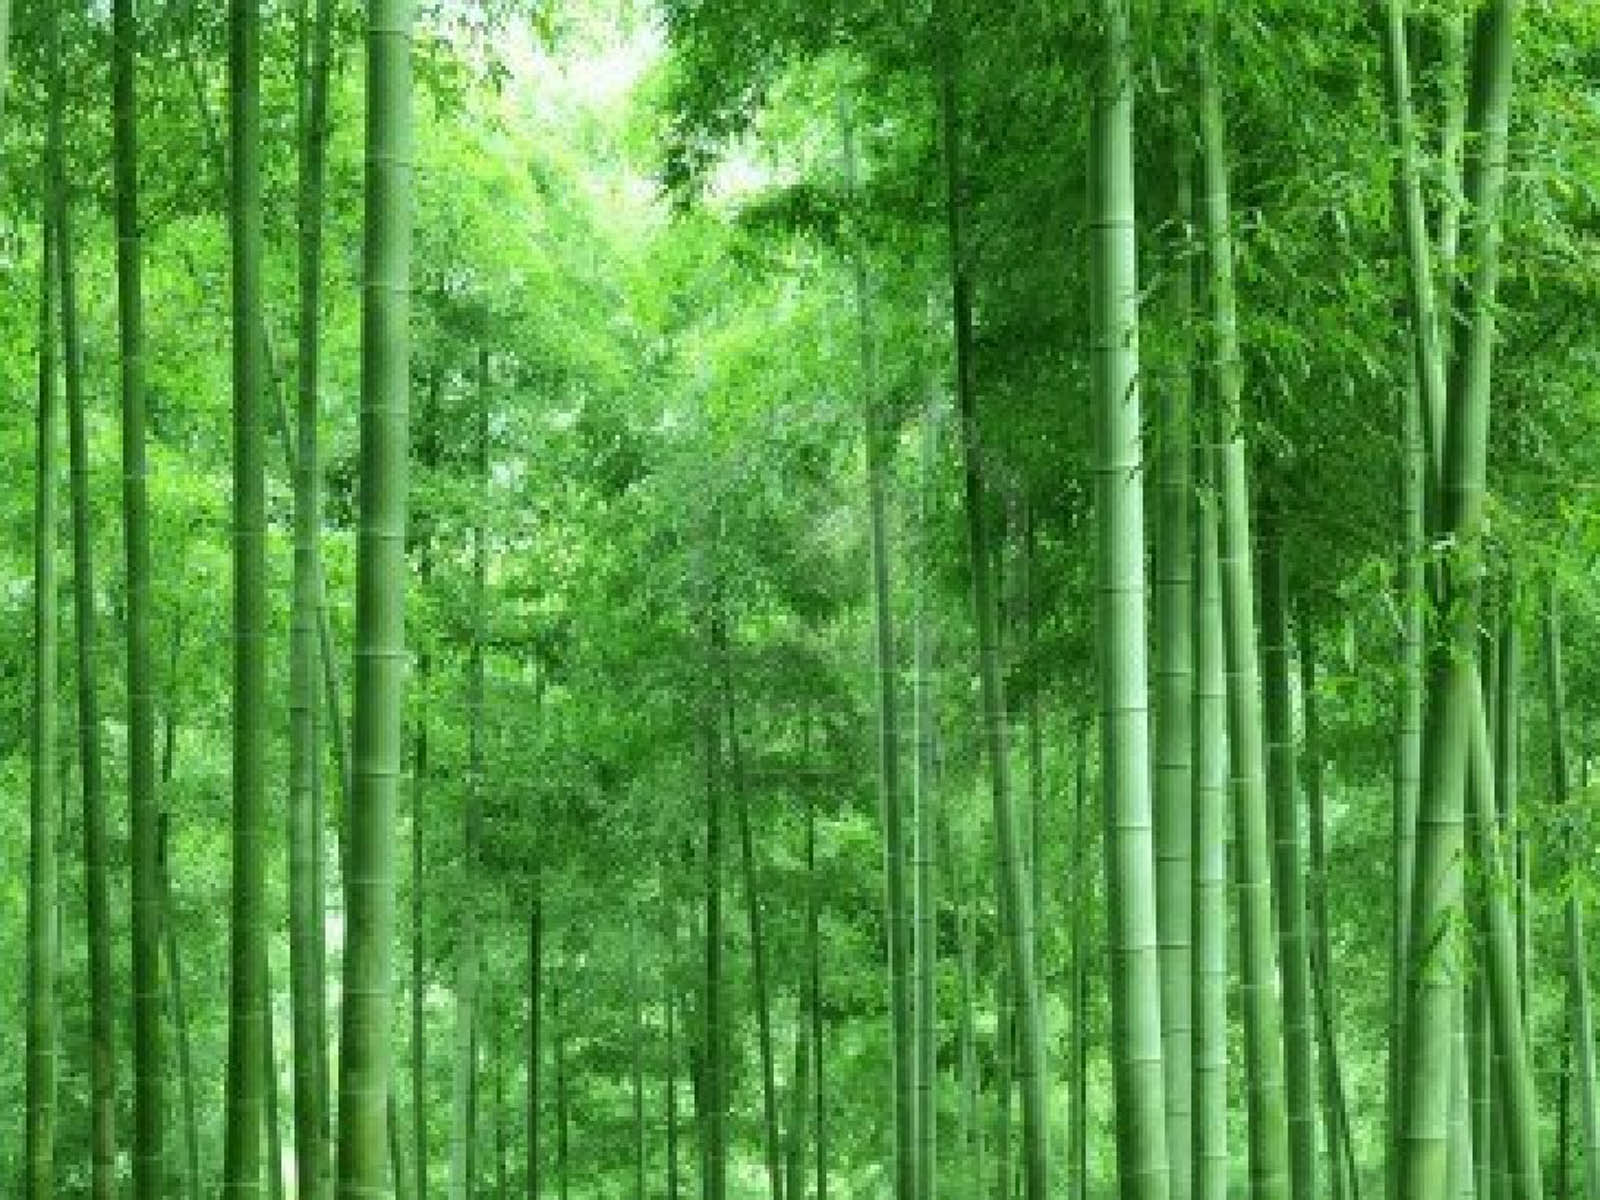 Naruto Shippuden Wallpaper 3d Free Download Wallpapers Bamboo Forest Wallpapers